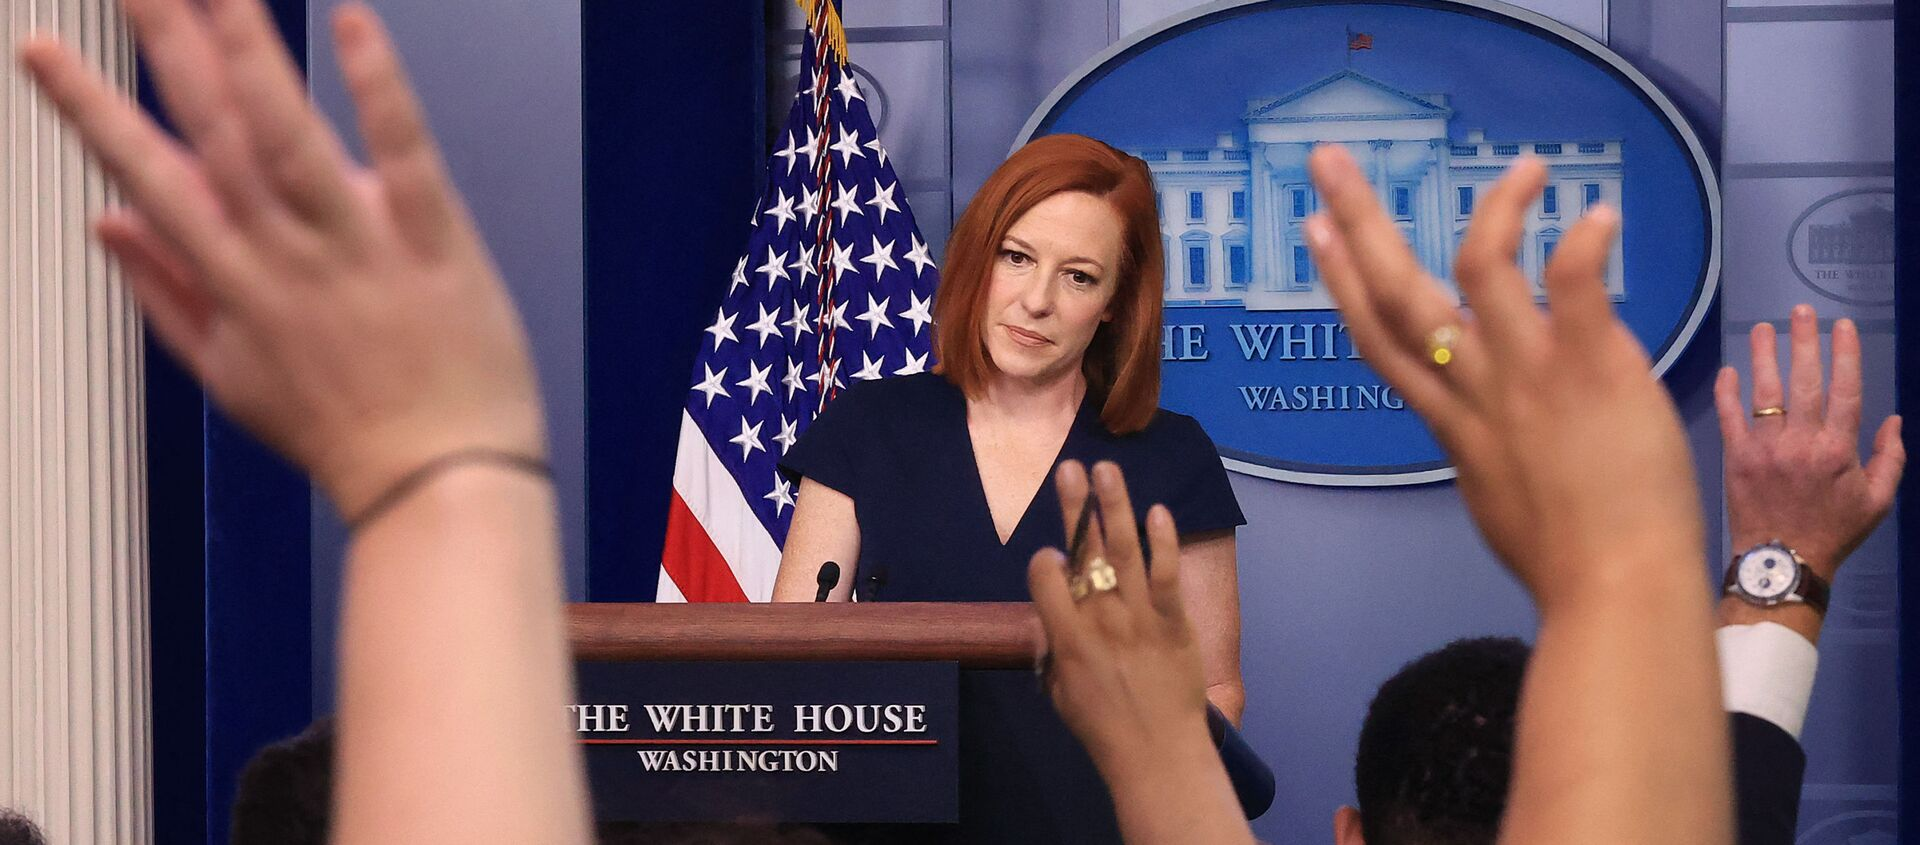 White House Press Secretary Jen Psaki takes questions from reporters during the daily news conference in the Brady Press Briefing Room at the White House on 8 June 2021 in Washington, DC. Psaki announced actions the Biden administration says it will take to strengthen critical American supply chains and promote economic security, national security, and good-paying, union jobs here at home. - Sputnik International, 1920, 05.08.2021